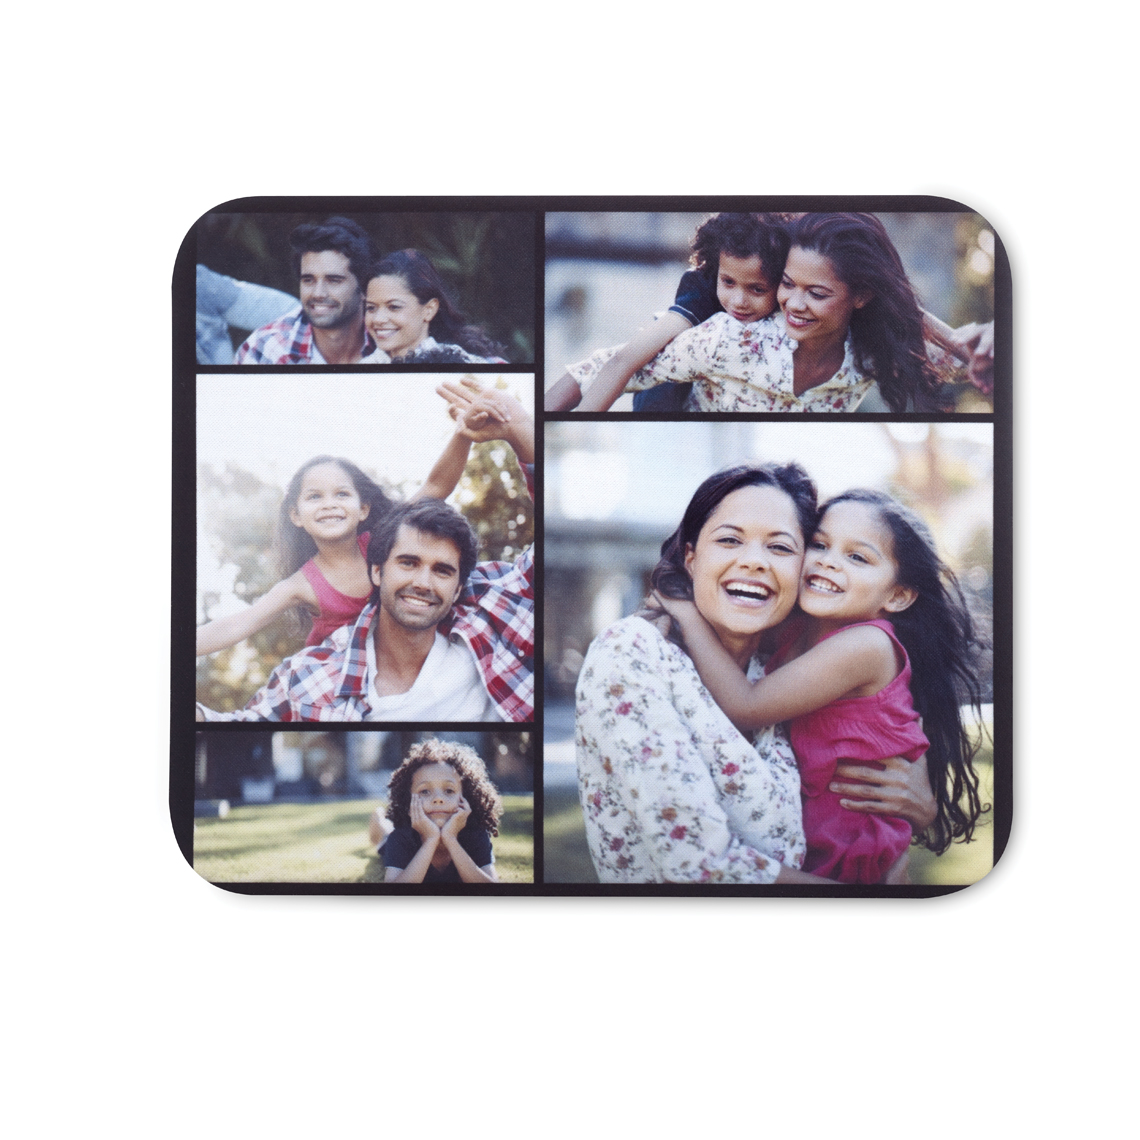 photo mouse pad custom mouse pads cvs photo